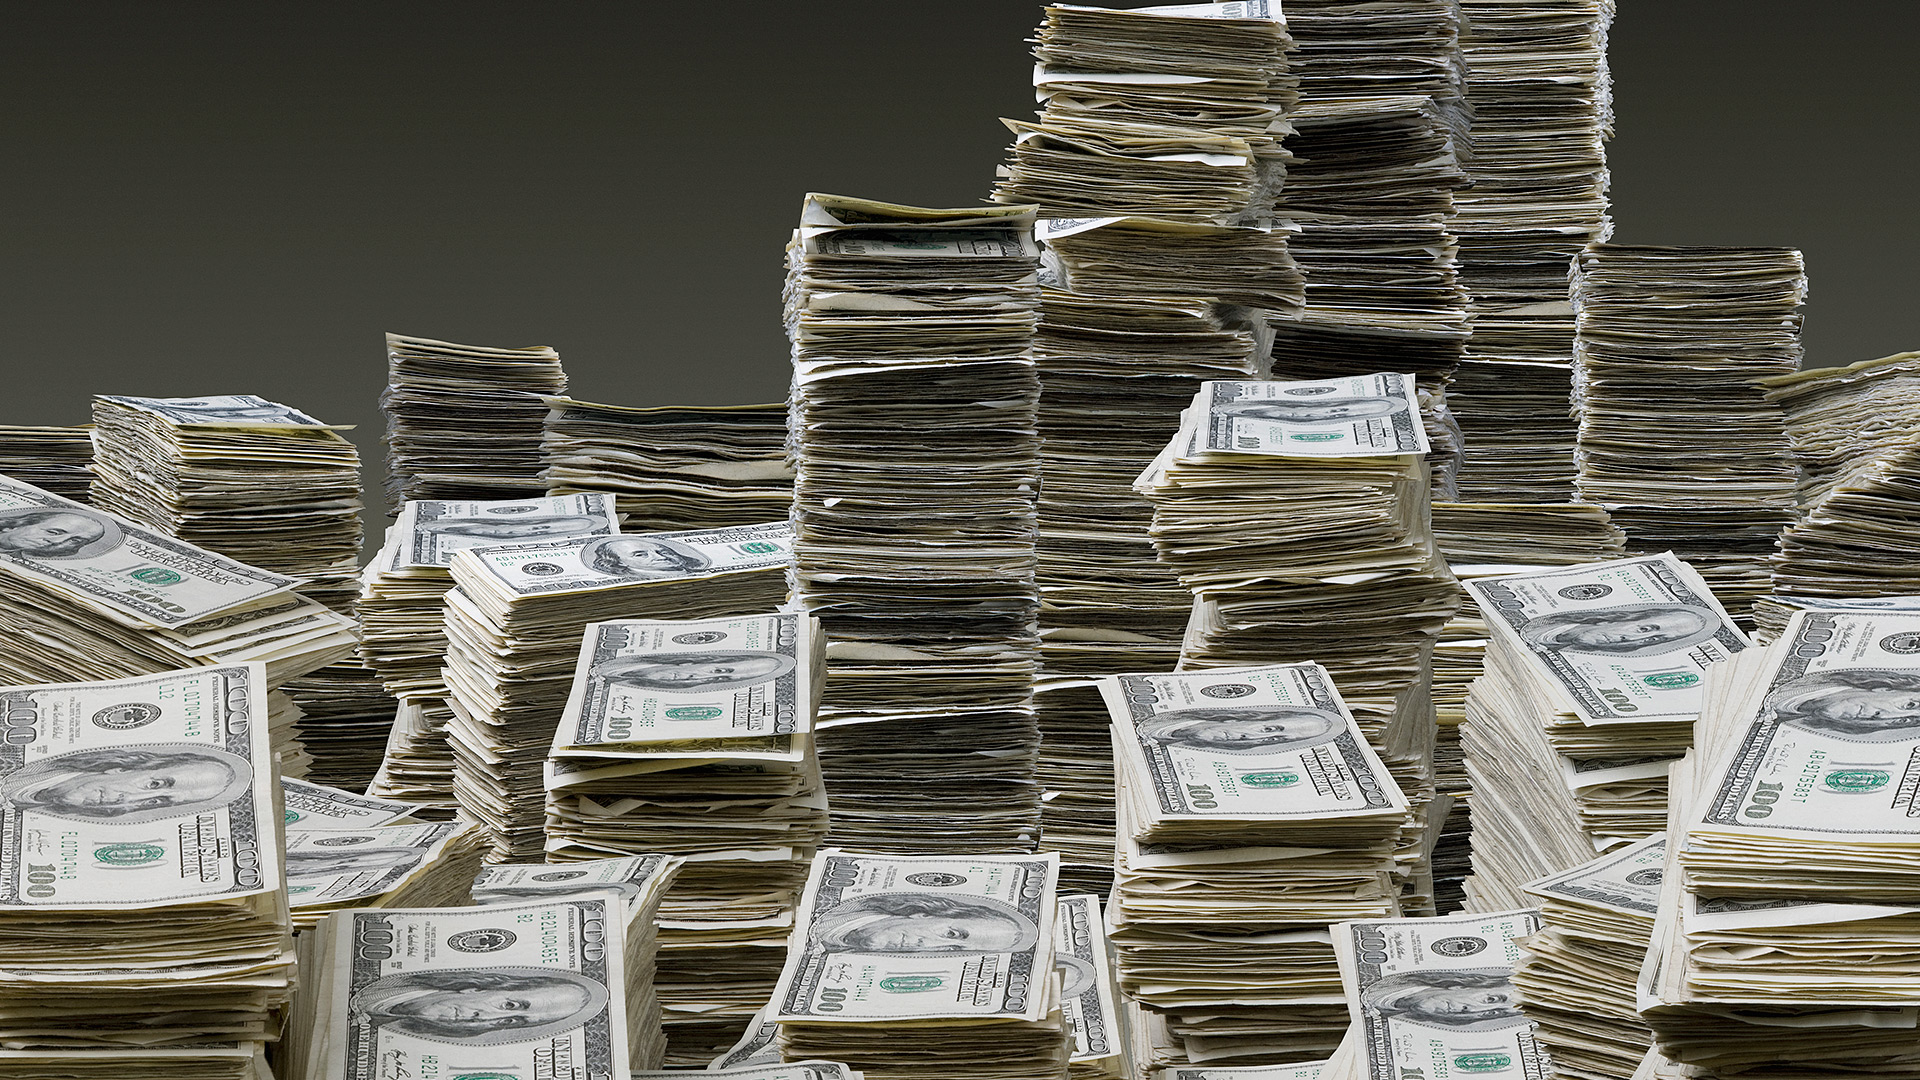 Cash Money Stacks Wallpaper 49517 1920x1080 px HDWallSourcecom